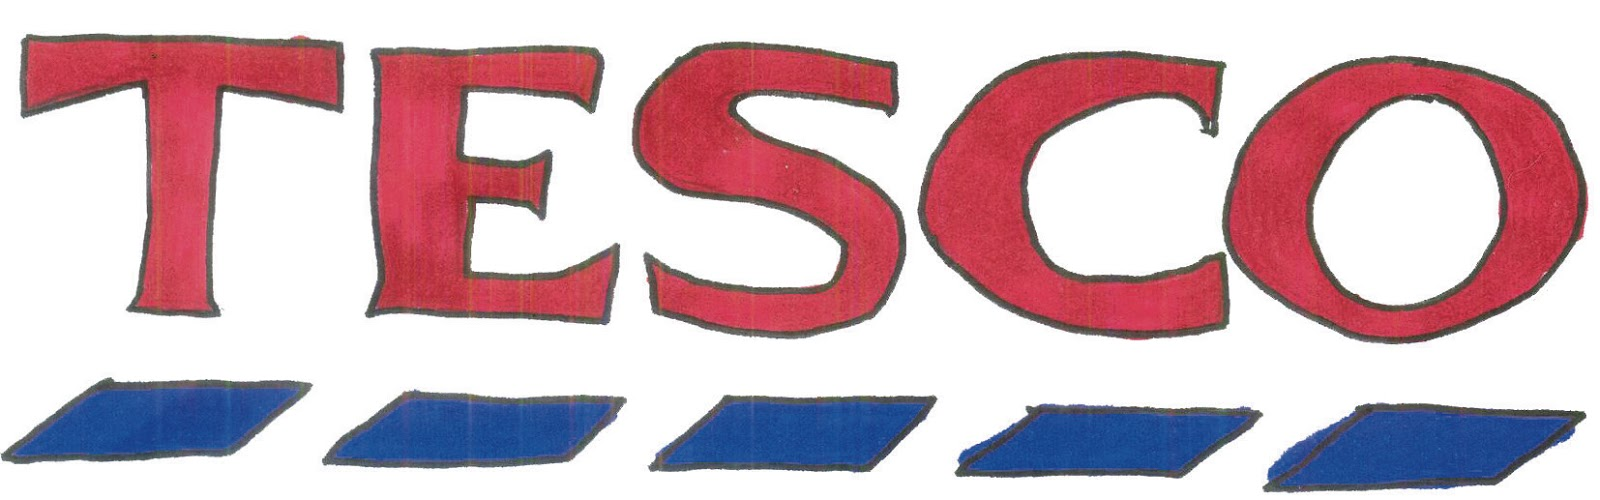 Tesco PLC SuccessStory